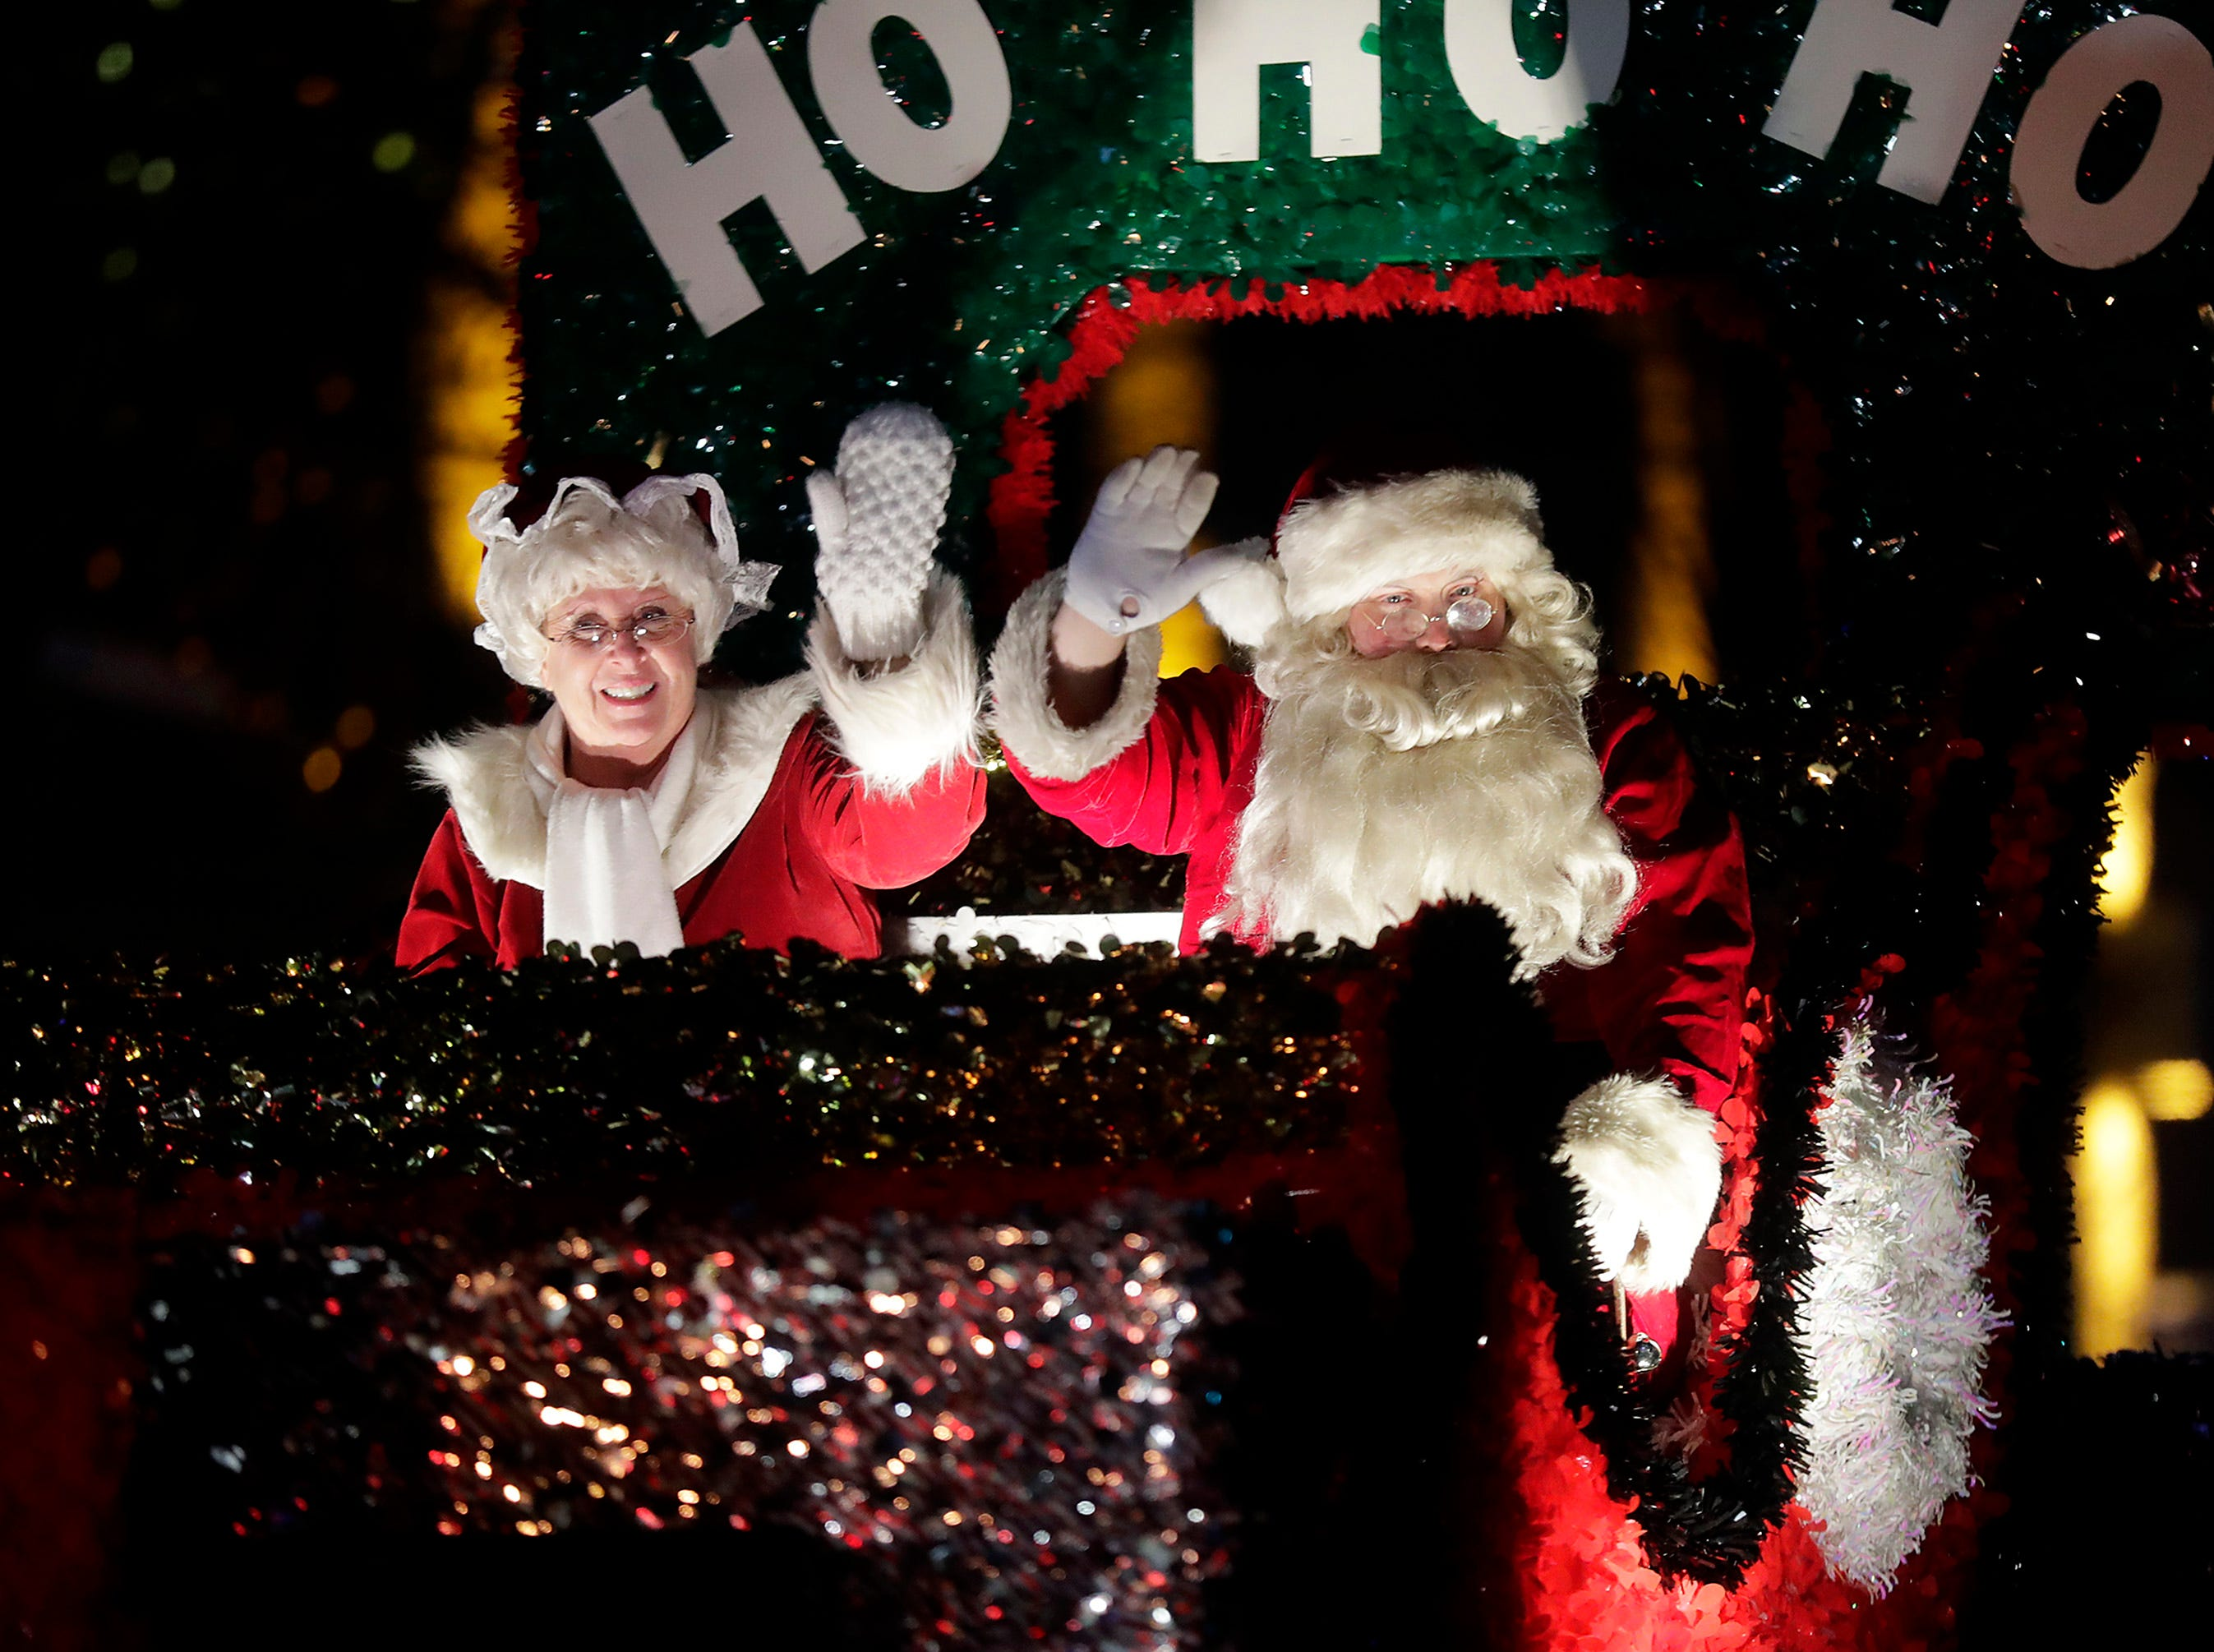 """Santa and Mrs. Claus make an apperance during the 48th Annual Downtown Appleton Christmas Parade on Tuesday, Nov. 20, 2018 in Appleton, Wis. This year's theme was """"Home for the Holidays."""" Wm. Glasheen/USA TODAY NETWORK-Wisconsin."""